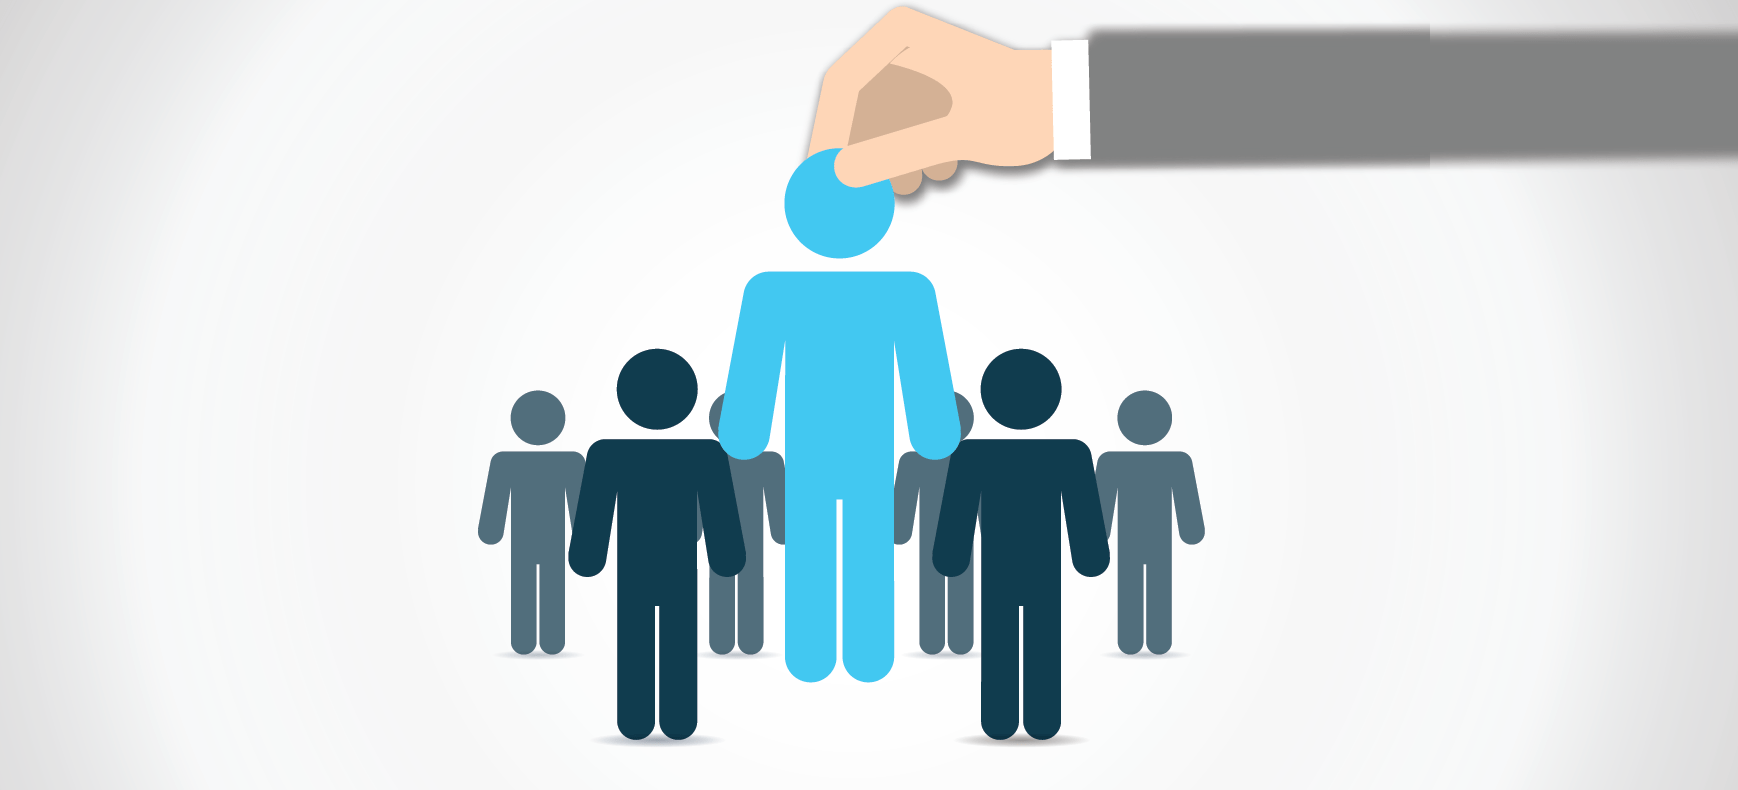 4 Best Hiring practices a startup should consider